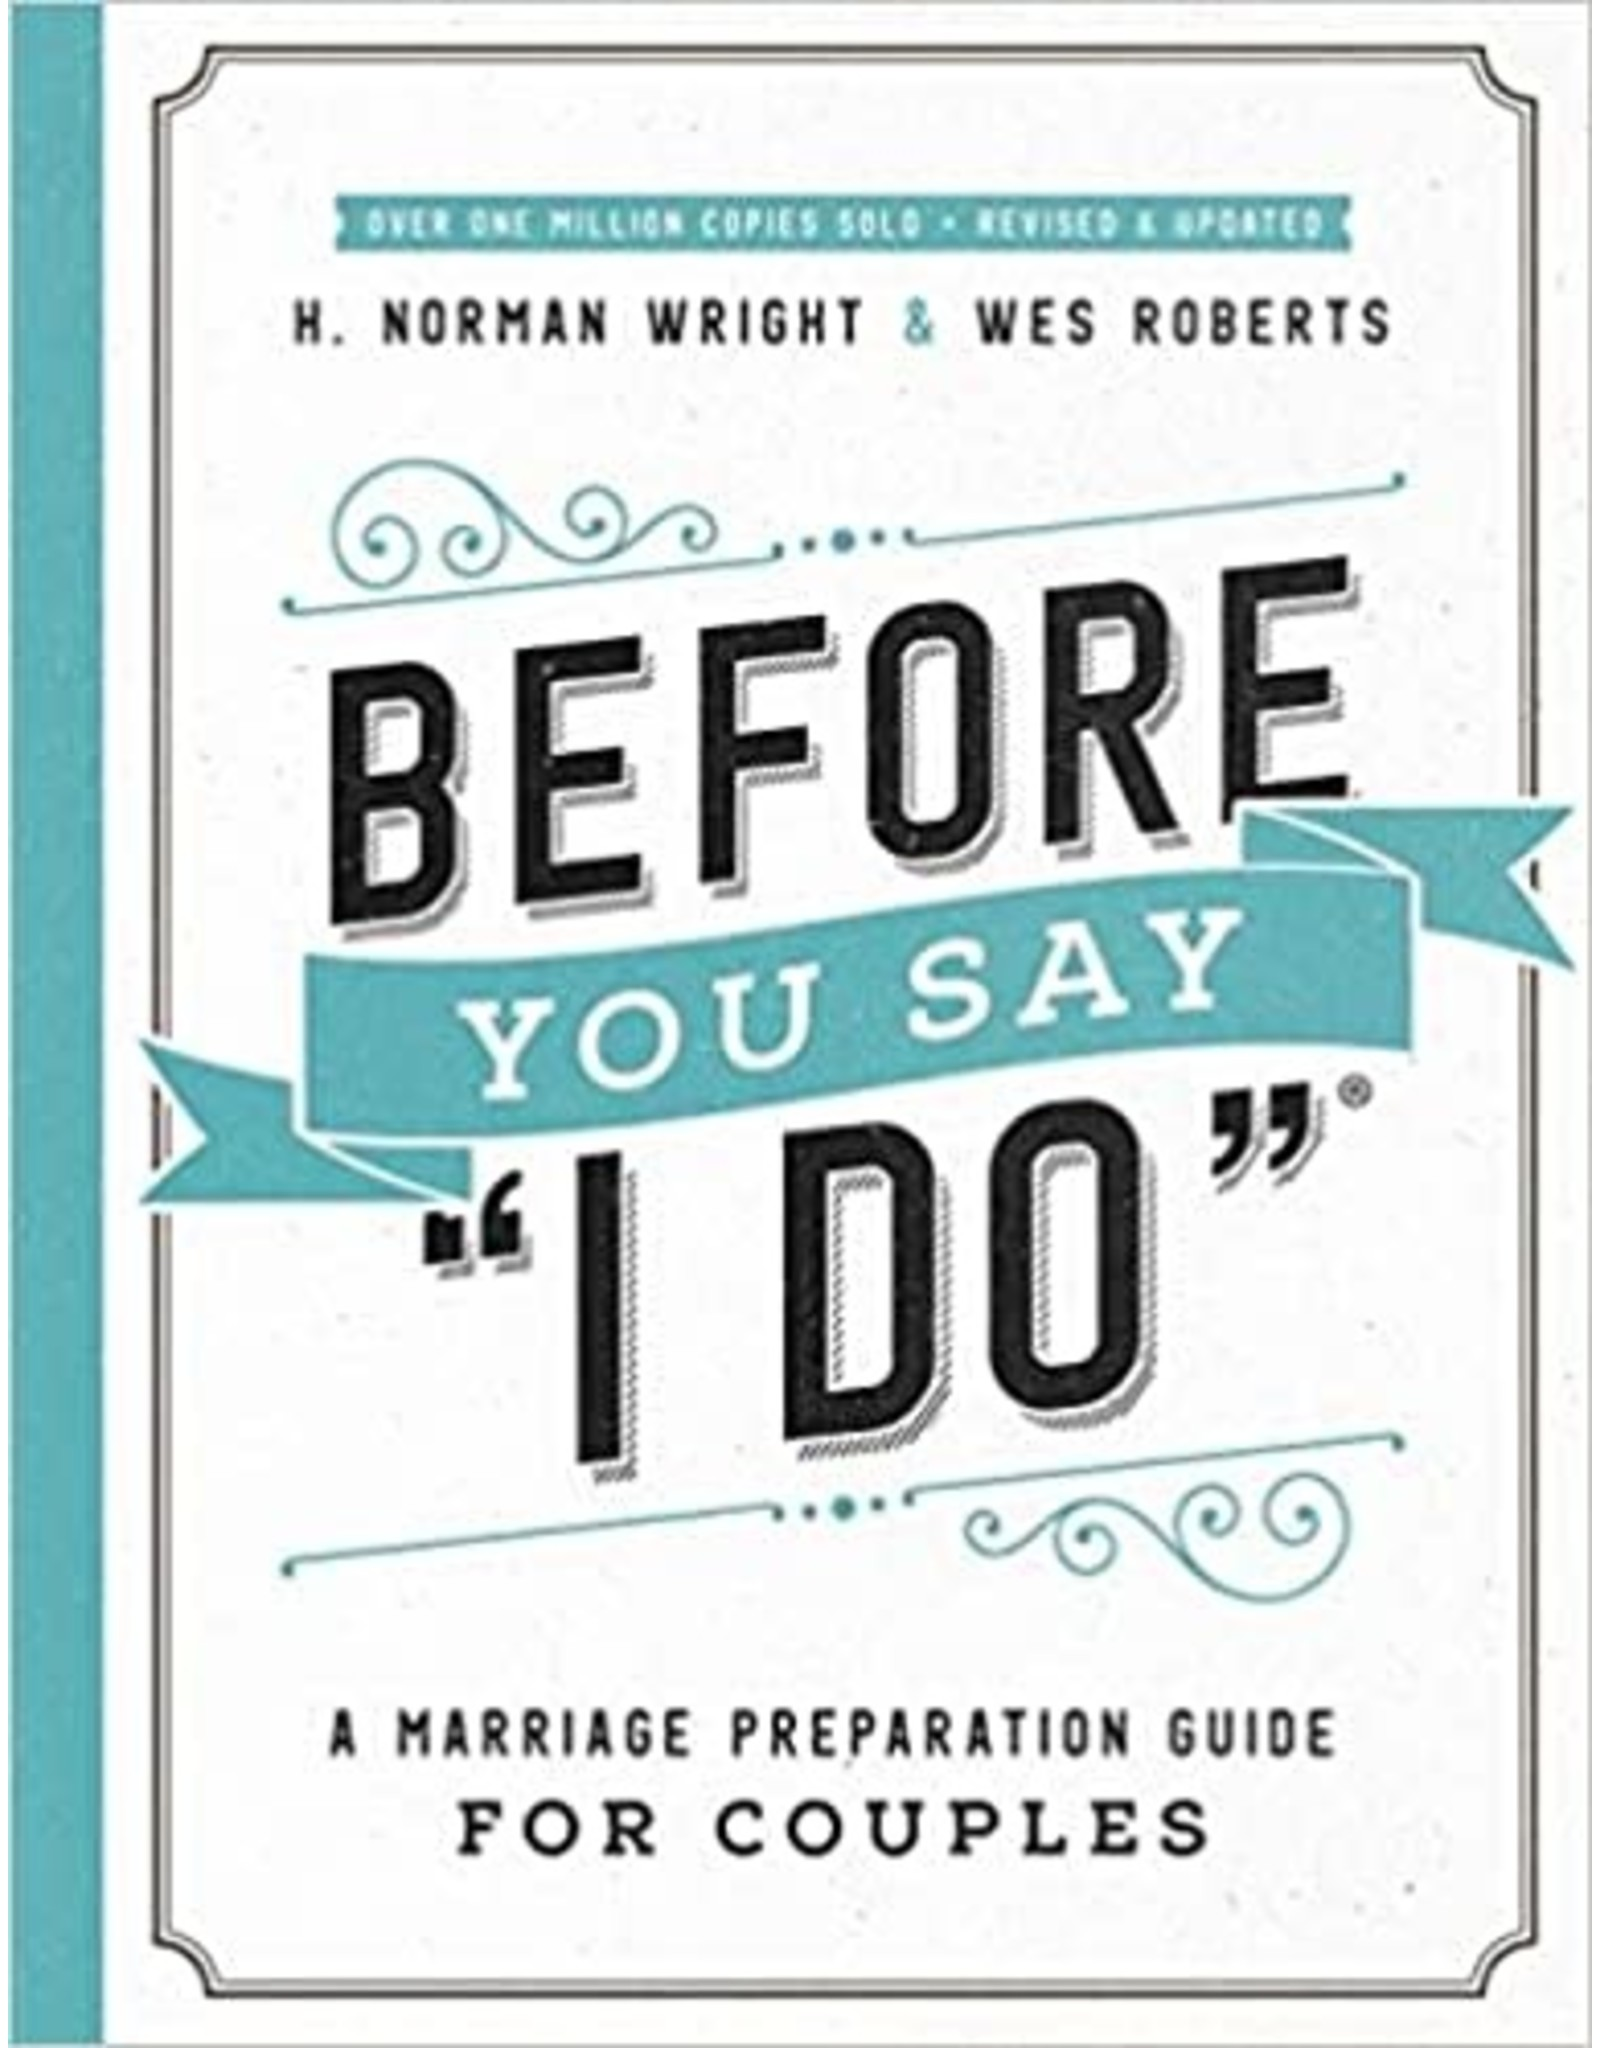 Before You Say I Do: A Marriage Preparation Guide for Couples